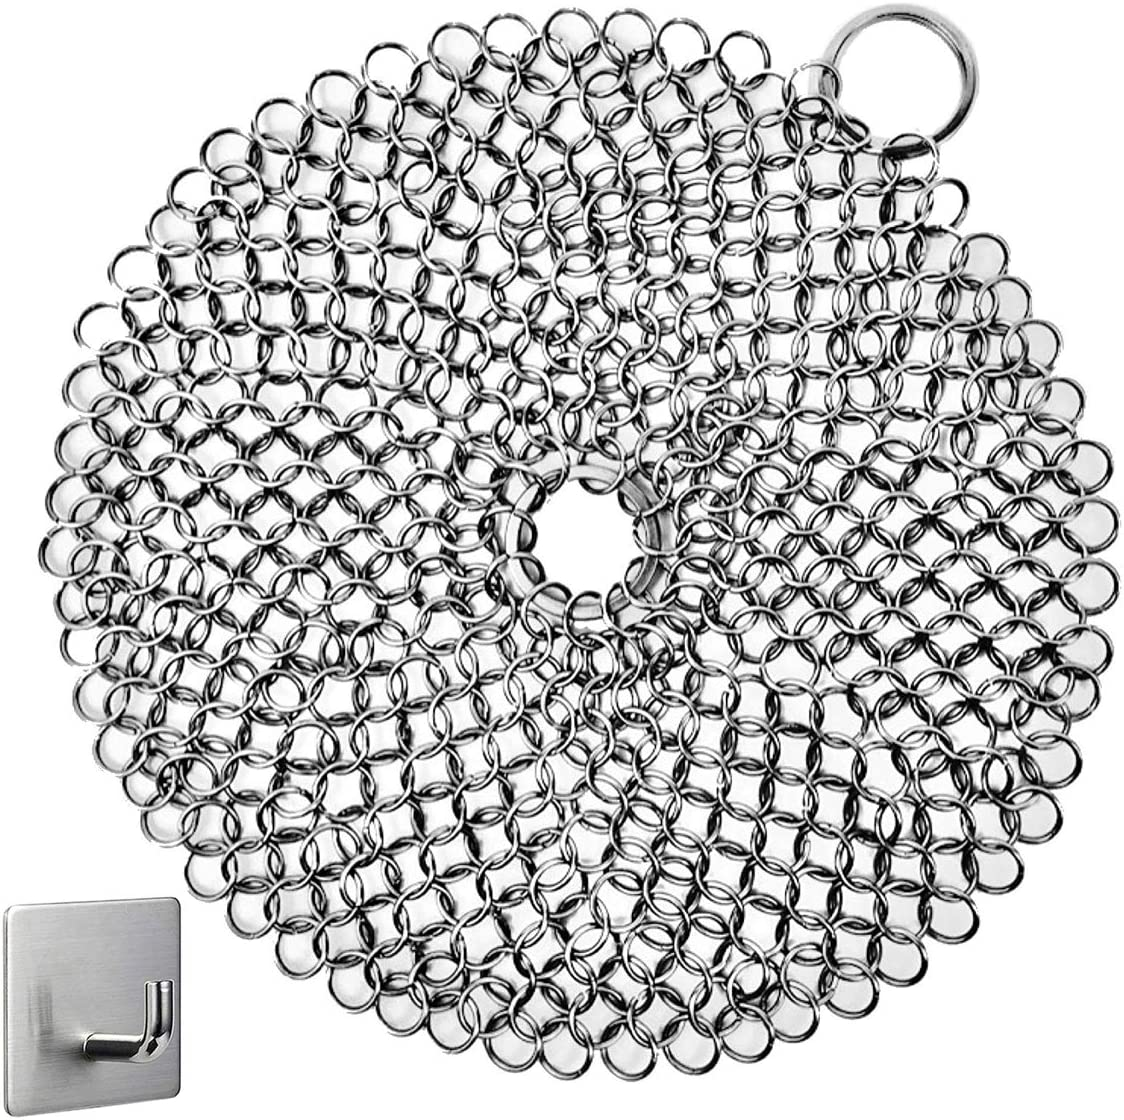 """Cast Iron Cleaner, Chainmail Scrubber, Meirenda 316L Chainmail Scrubber 8"""" x 8"""" Stainless Steel Chain Skillet Cleaner for Cast Iron Pre-Seasoned Dutch Ovens Waffle Iron Pans (8""""x8"""" Round)"""